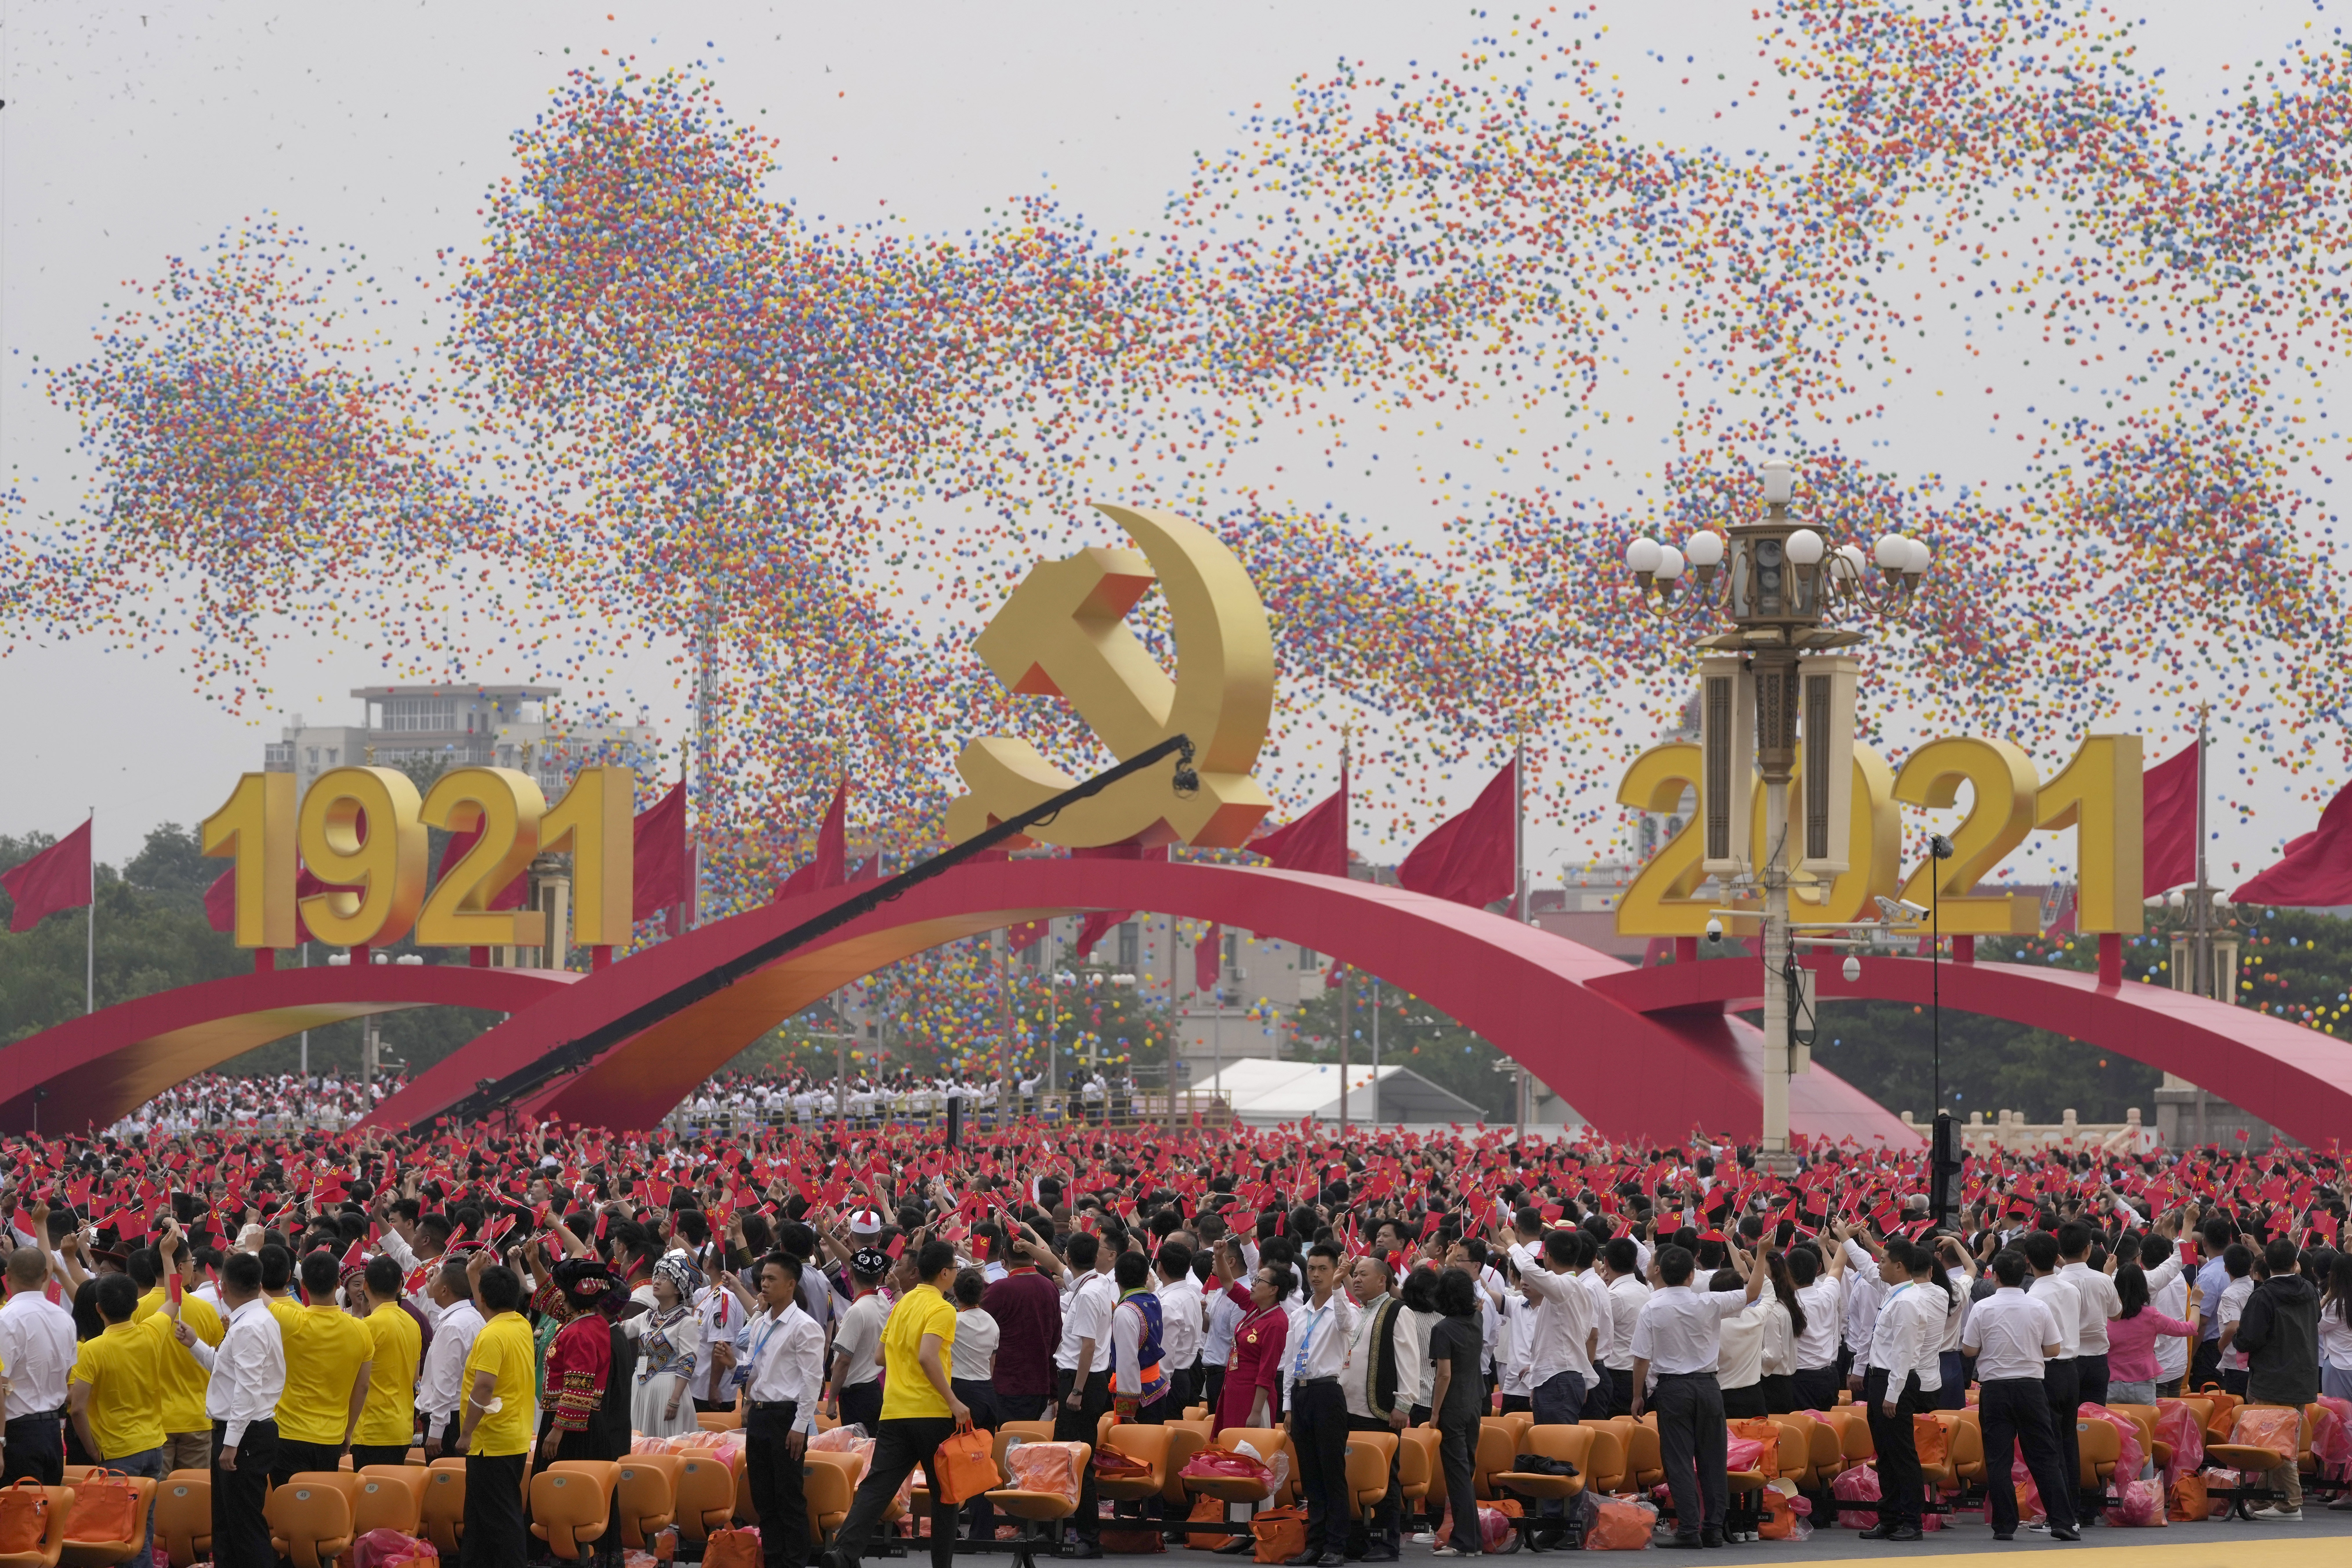 Balloons float over attendees waving Chinese flags during the anniversary celebration at Tiananmen Square on Thursday.